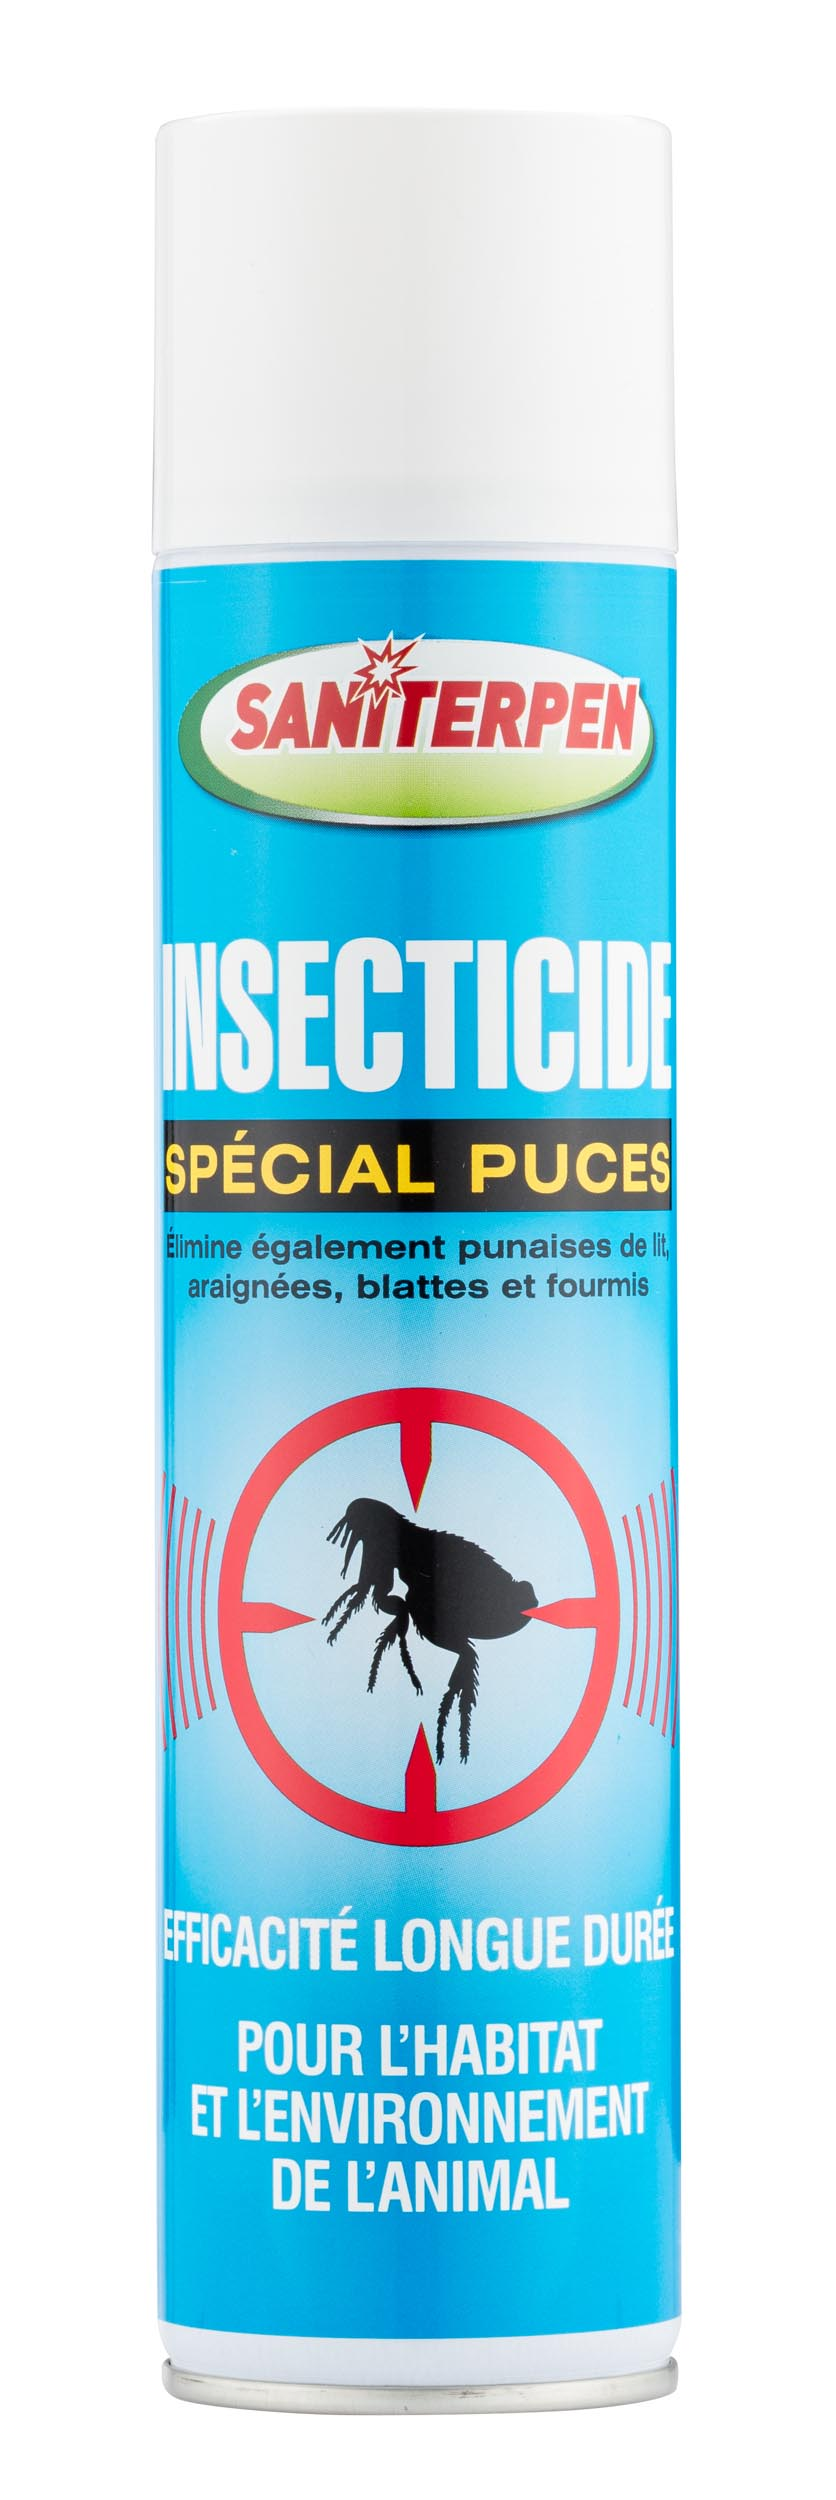 A56781-Insecticide Spécial Puces 400 ml - A56781